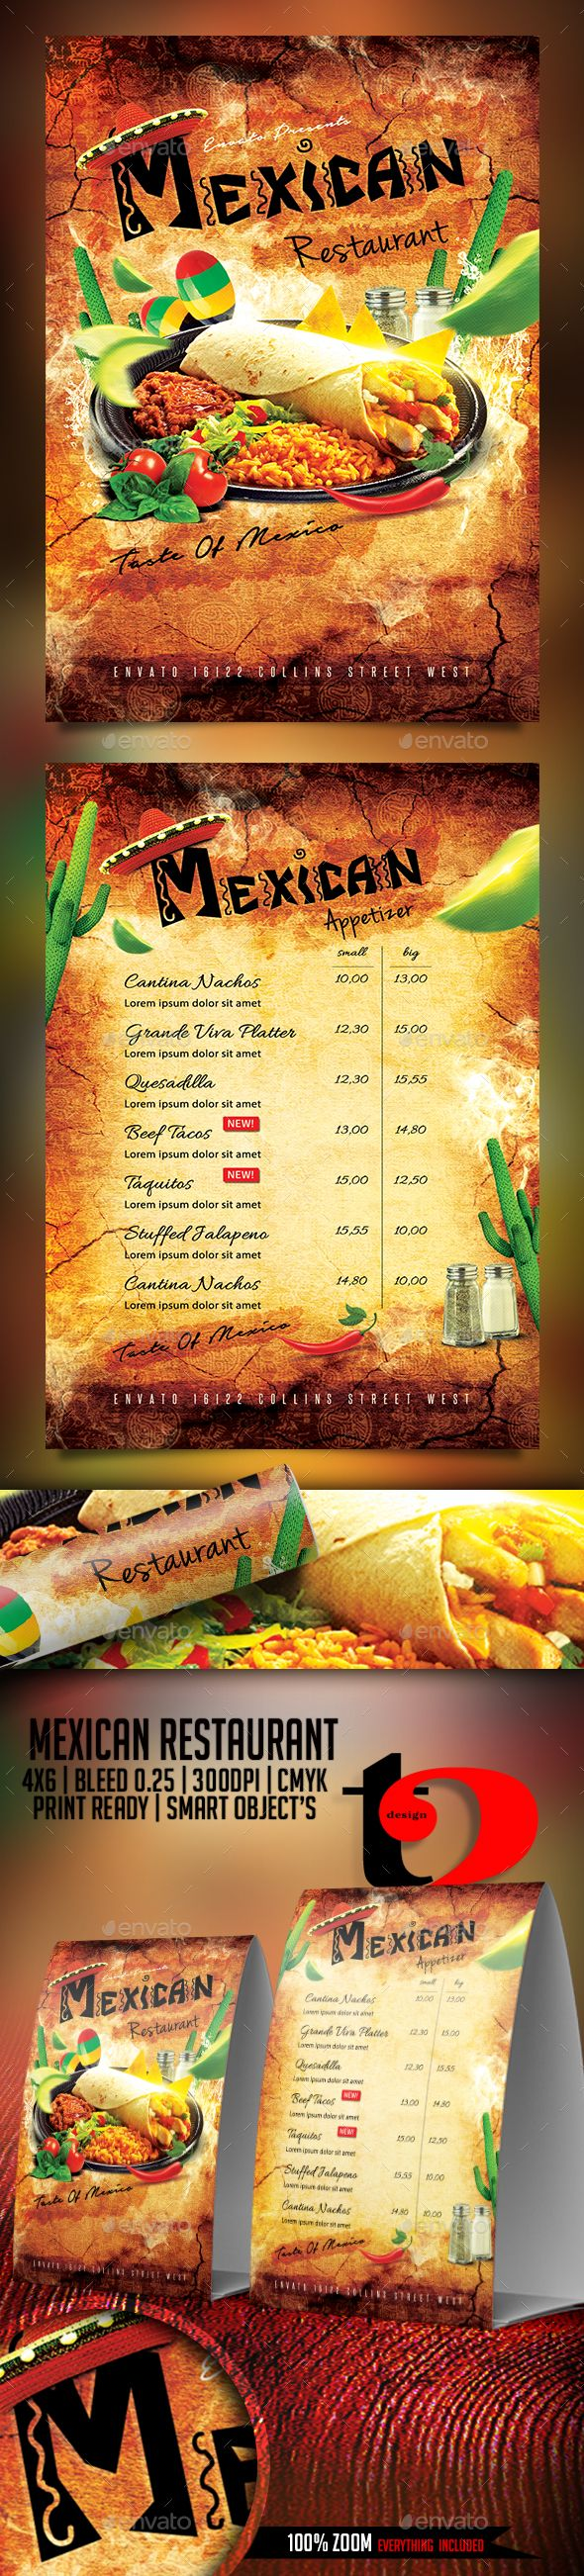 Mexican Restaurant Flyer Template by Take2Design A Cool, and realistic Mexican Restaurant Flyer. Easily editable, highly organized file.. full of design elements, along with profe